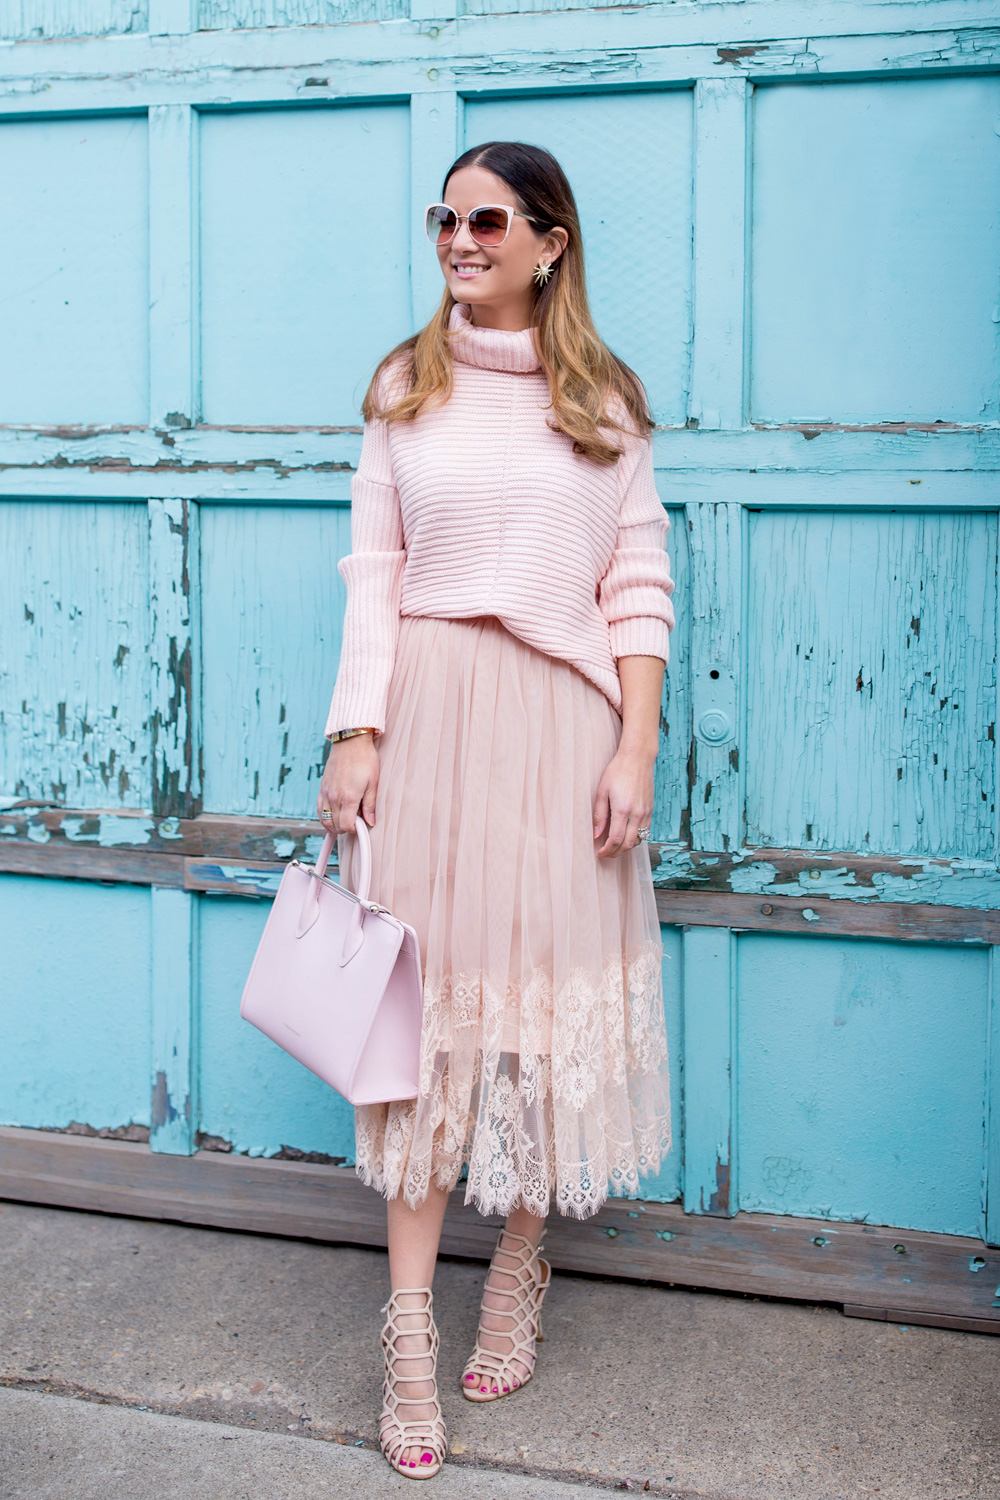 ASOS Pink Tulle Lace Skirt